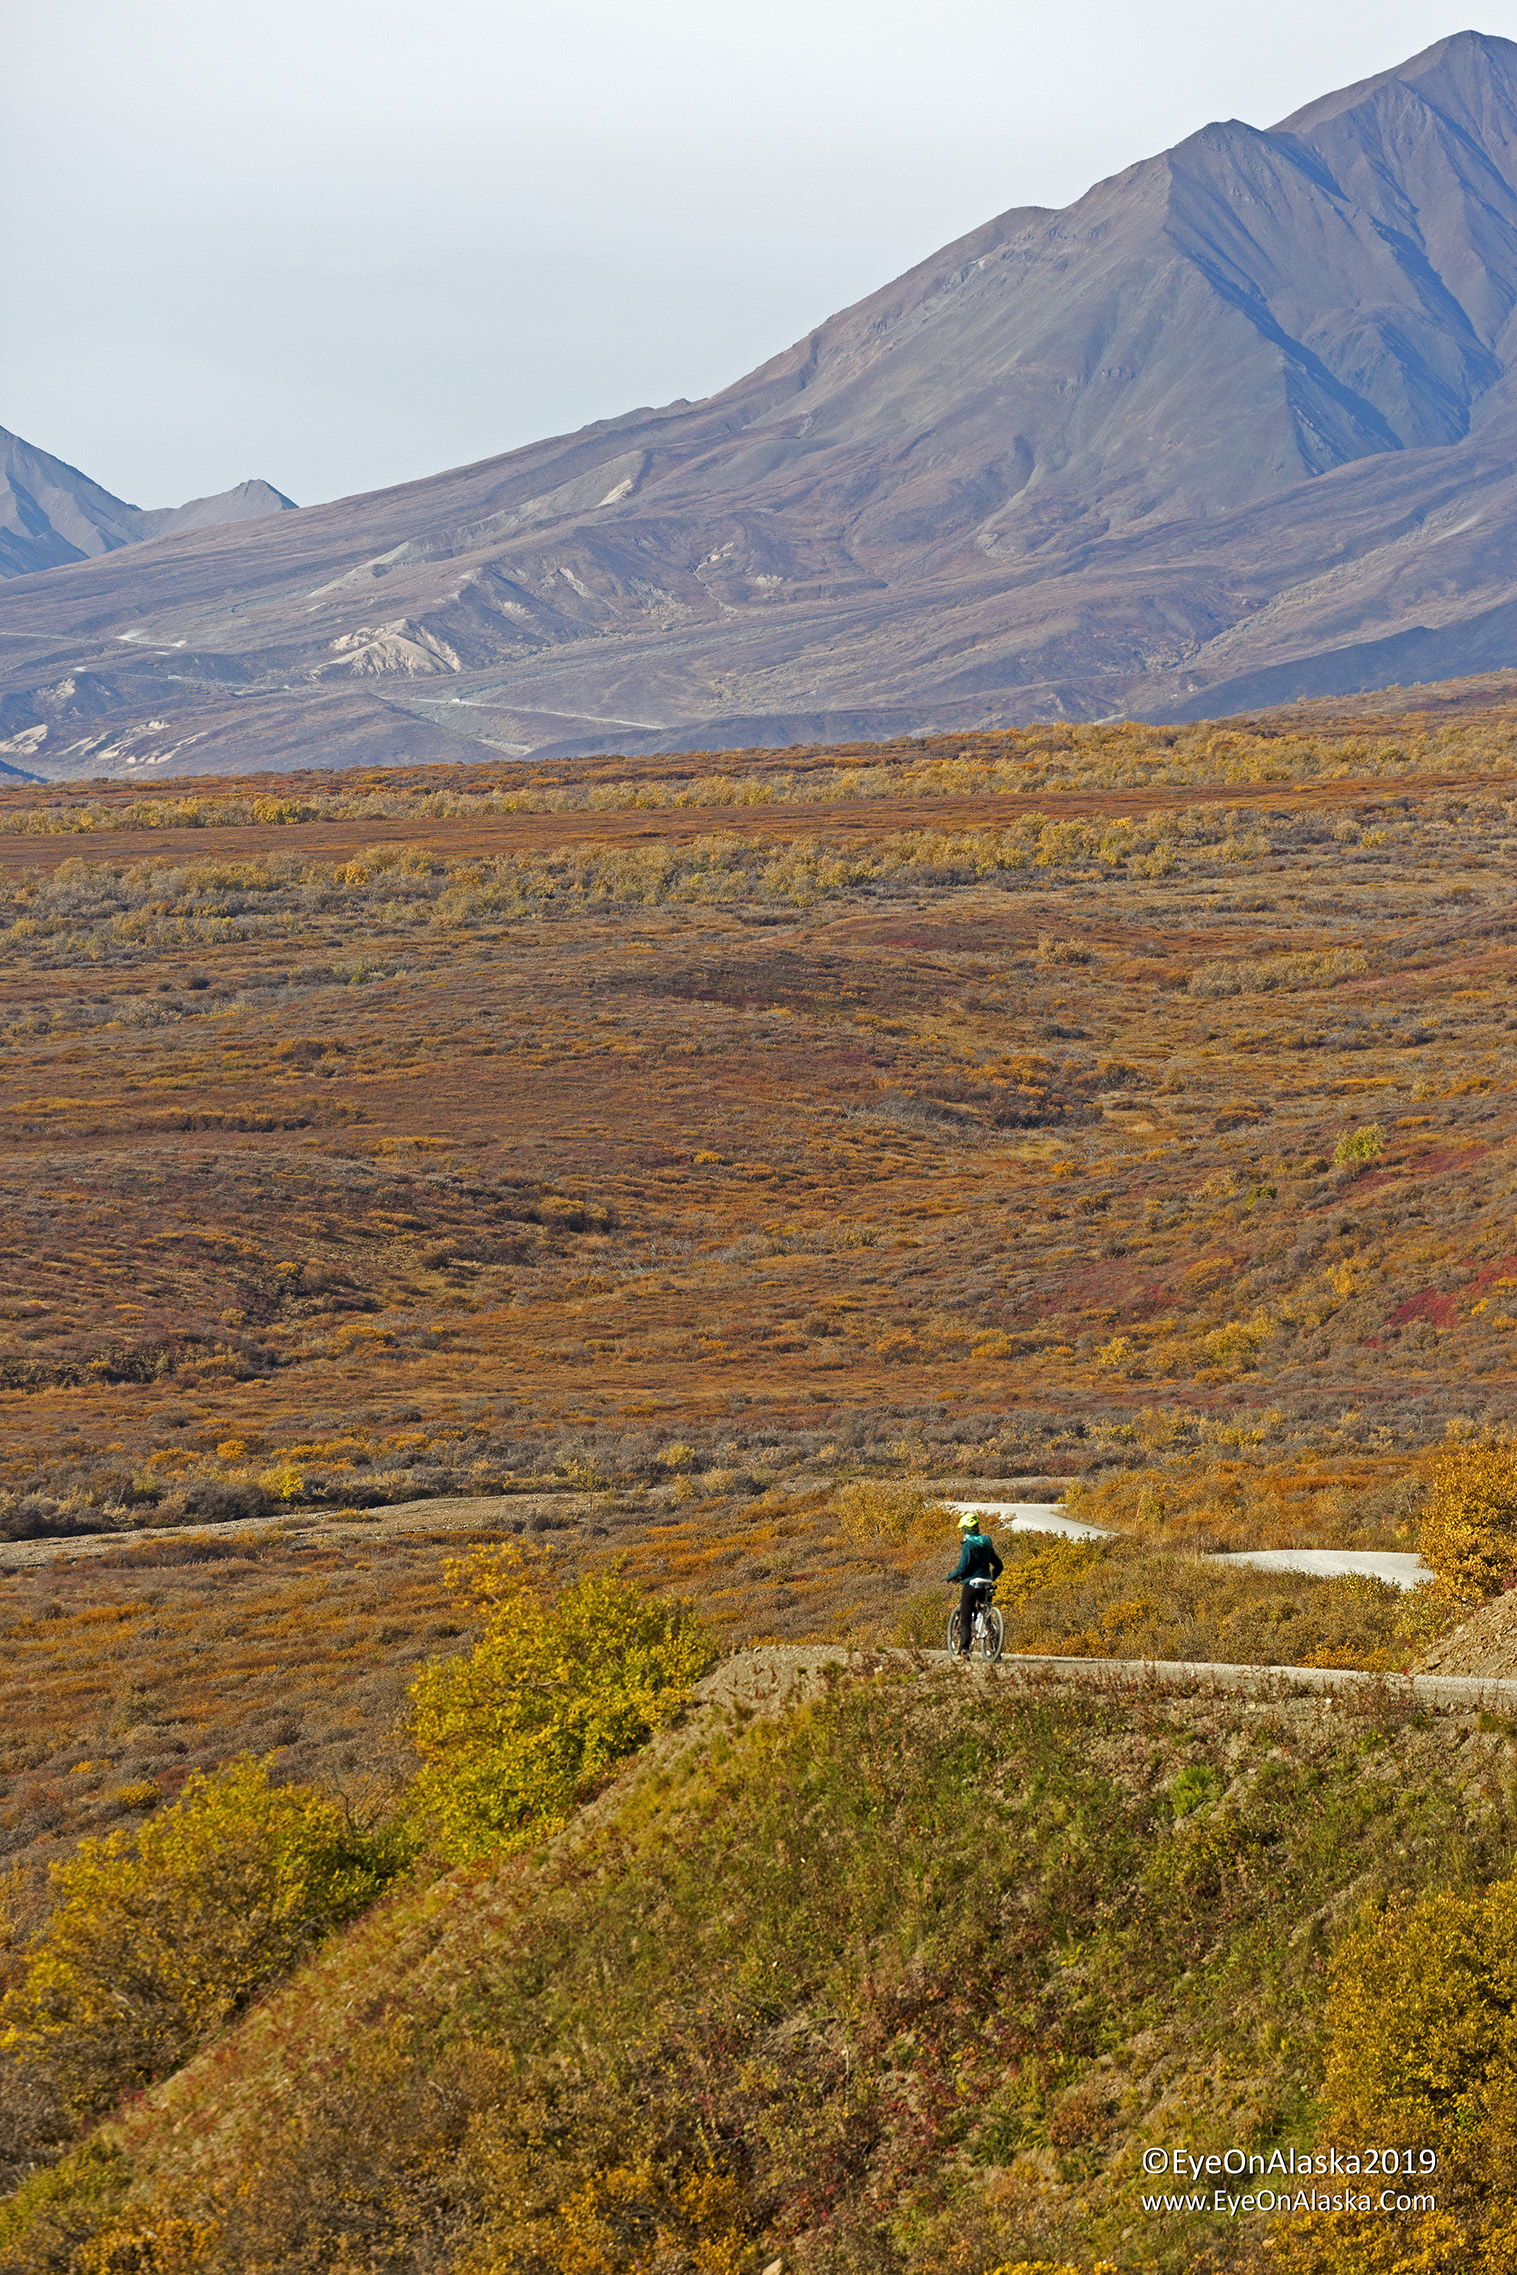 We biked from Polychrome Pass to the Toklat River.  The scenery was like this the entire way.